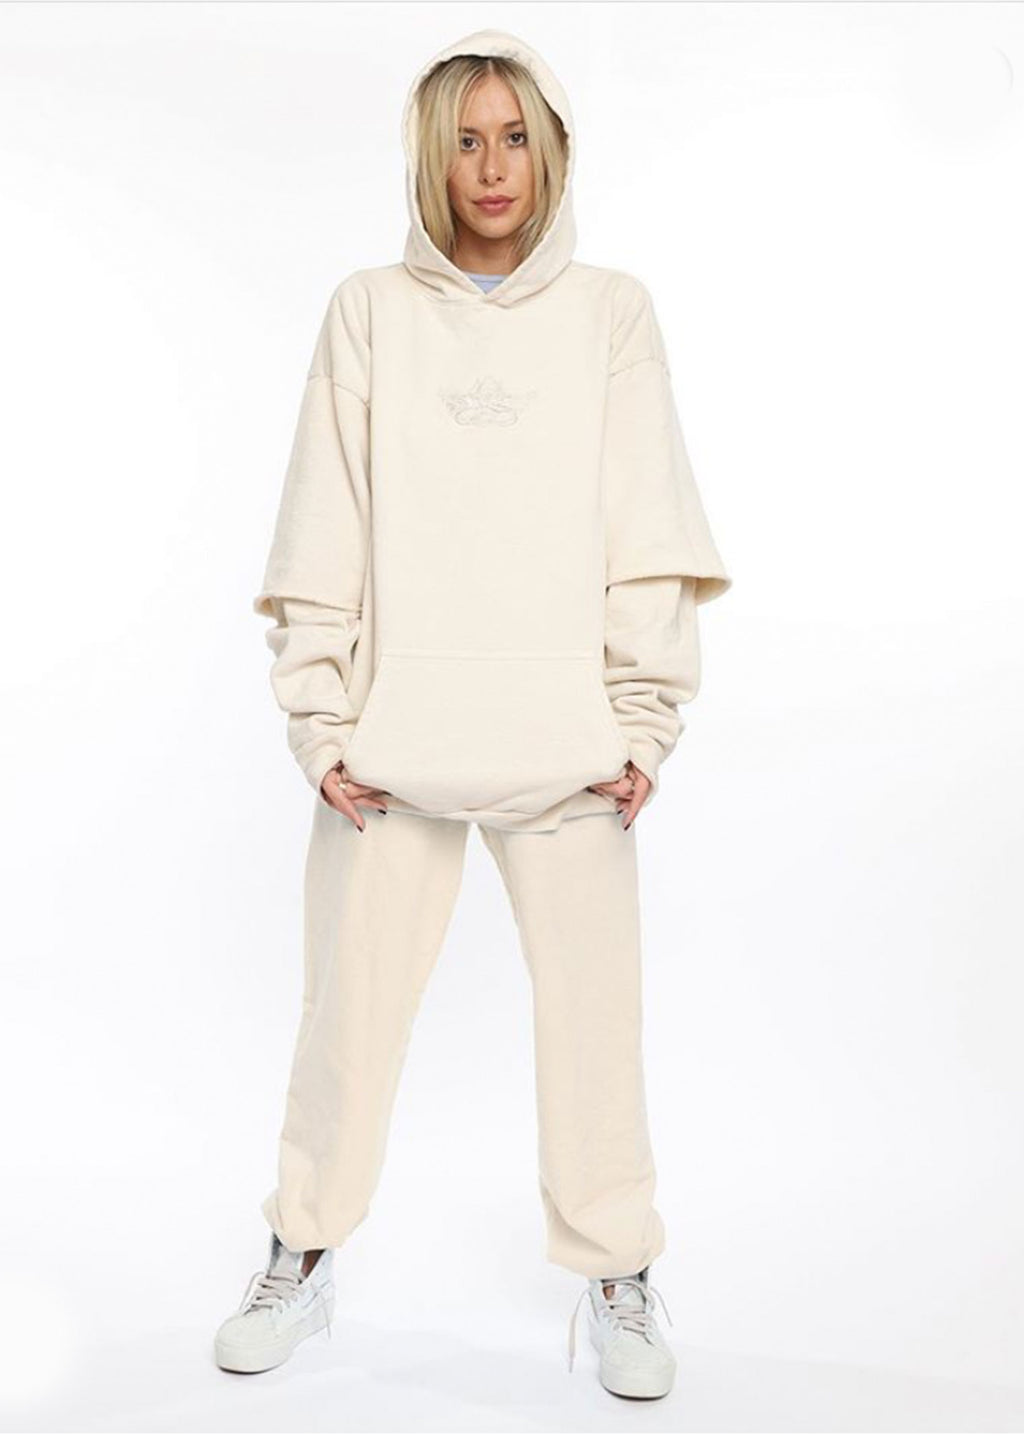 Boys Lie Ivory Twofer Sweatshirt ★ One Size - Rock N Rags